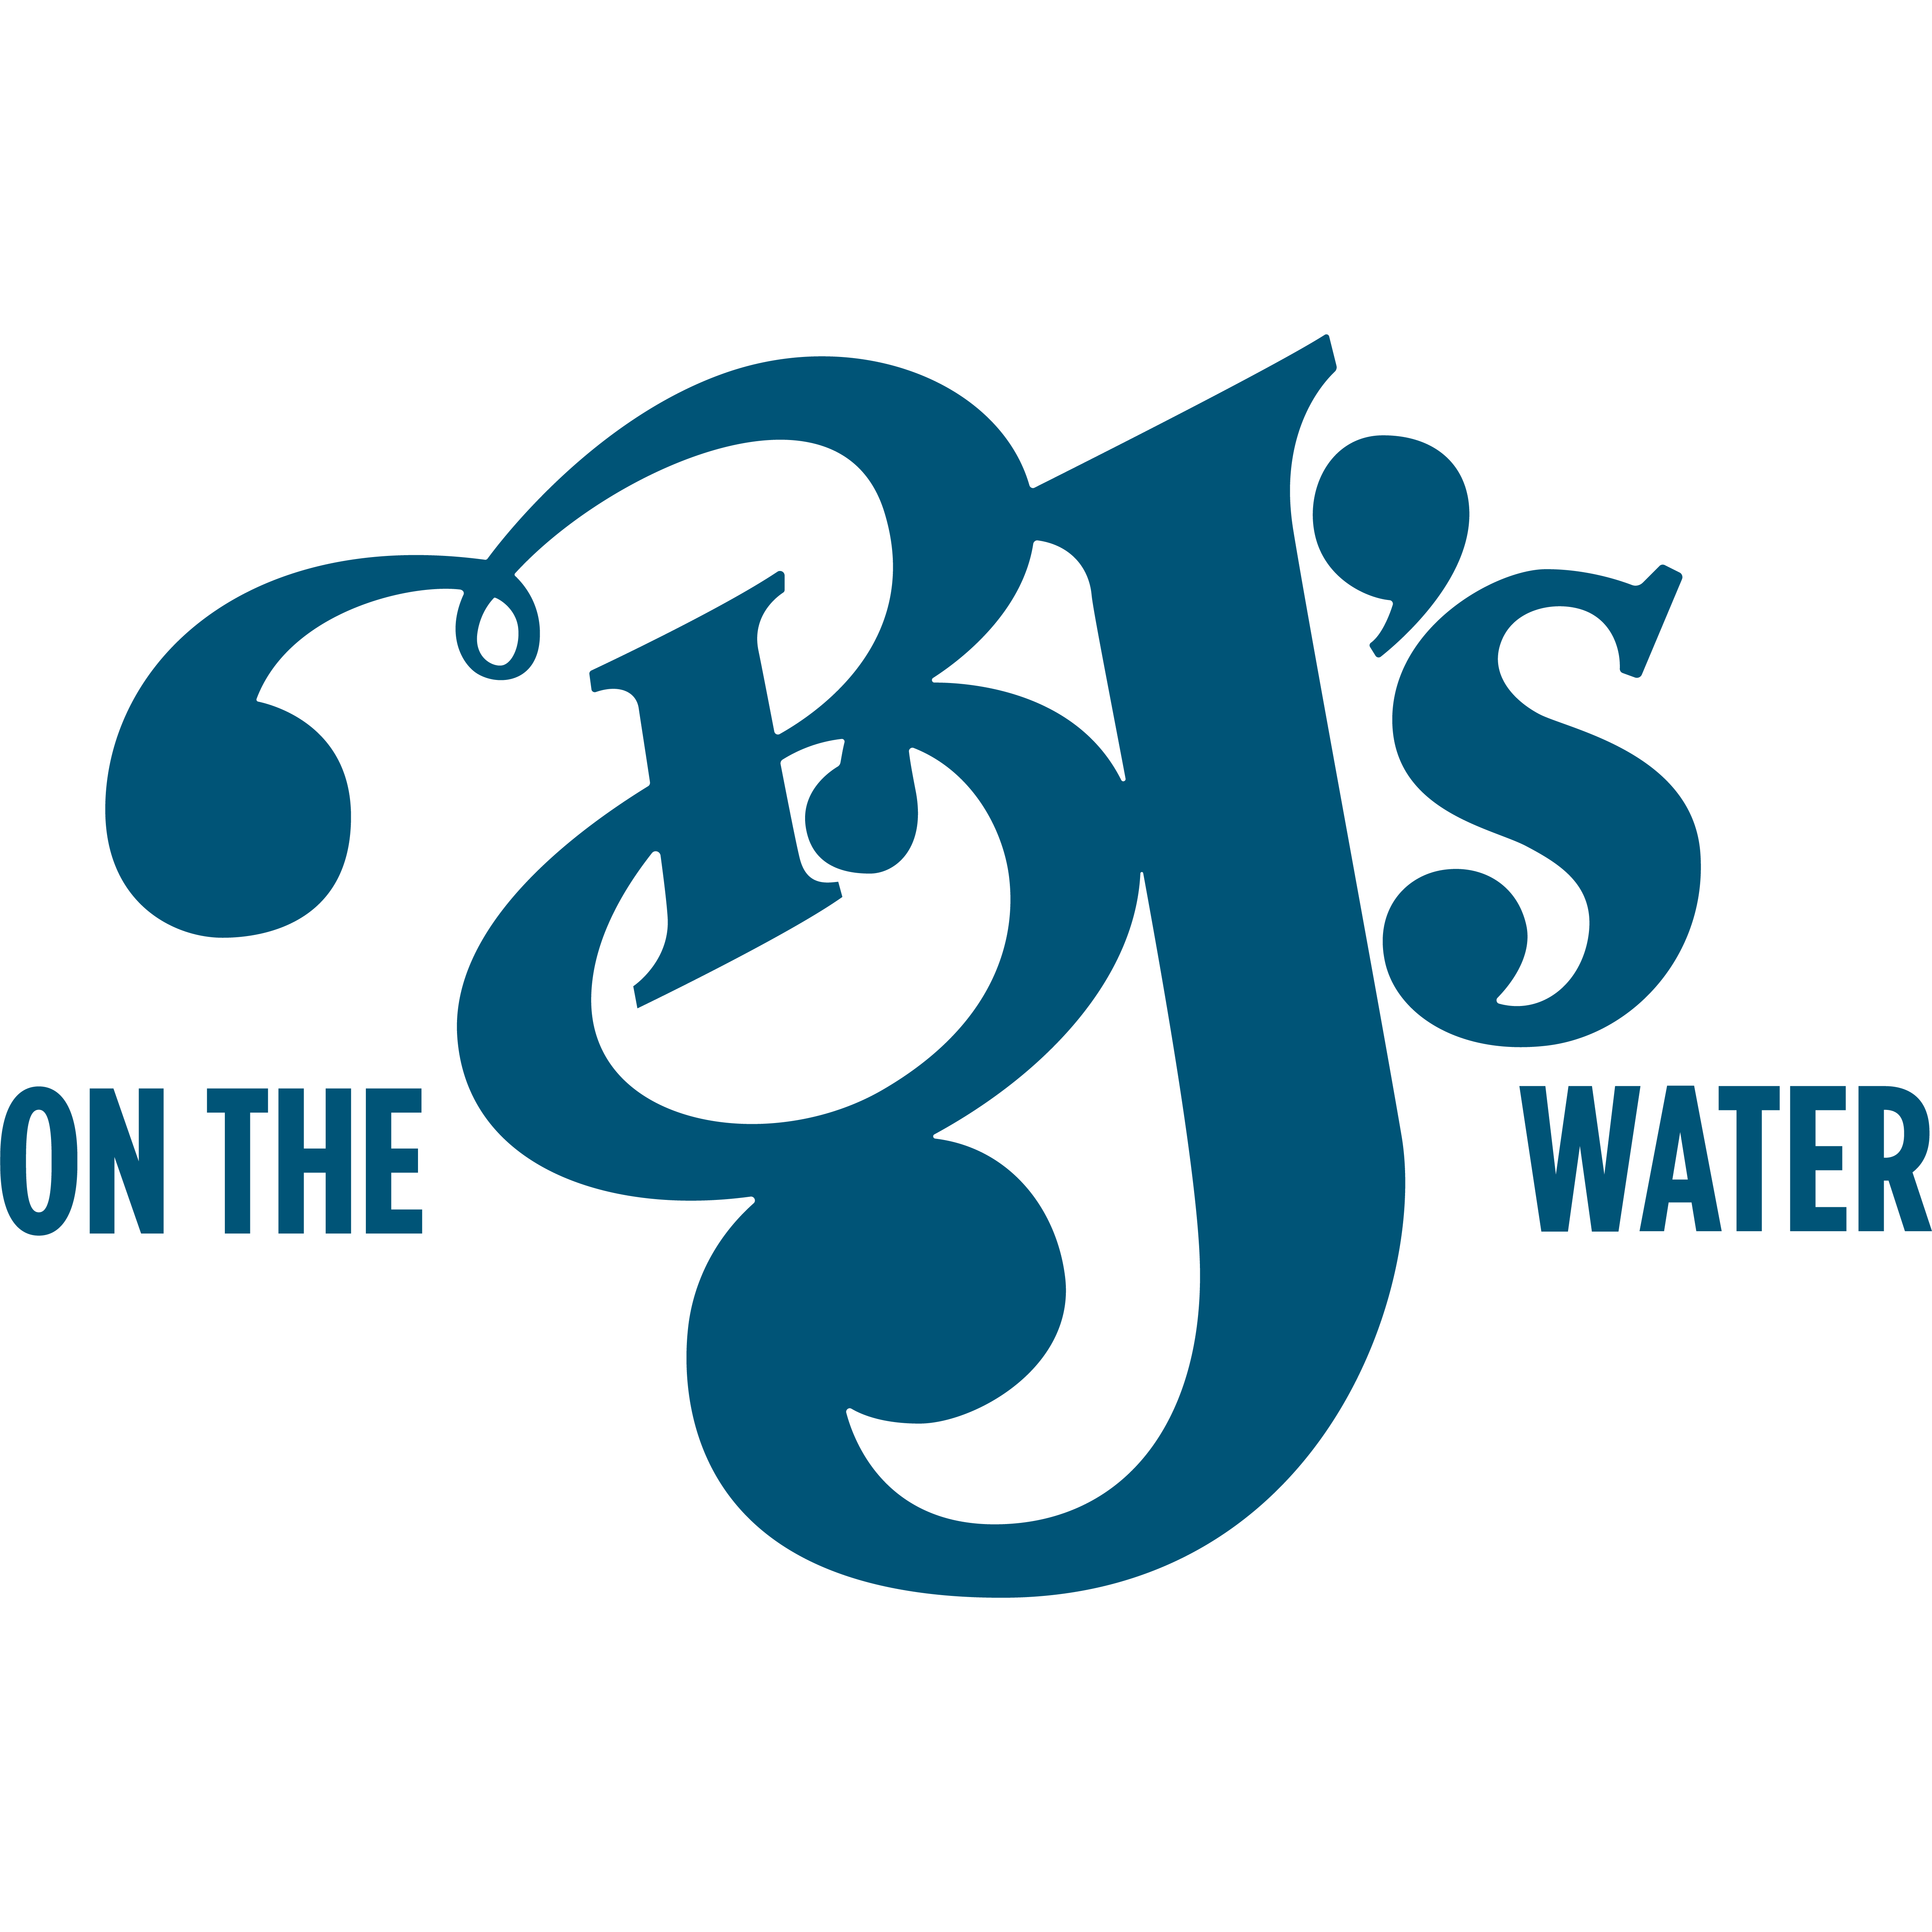 BJ's on the Water image 6